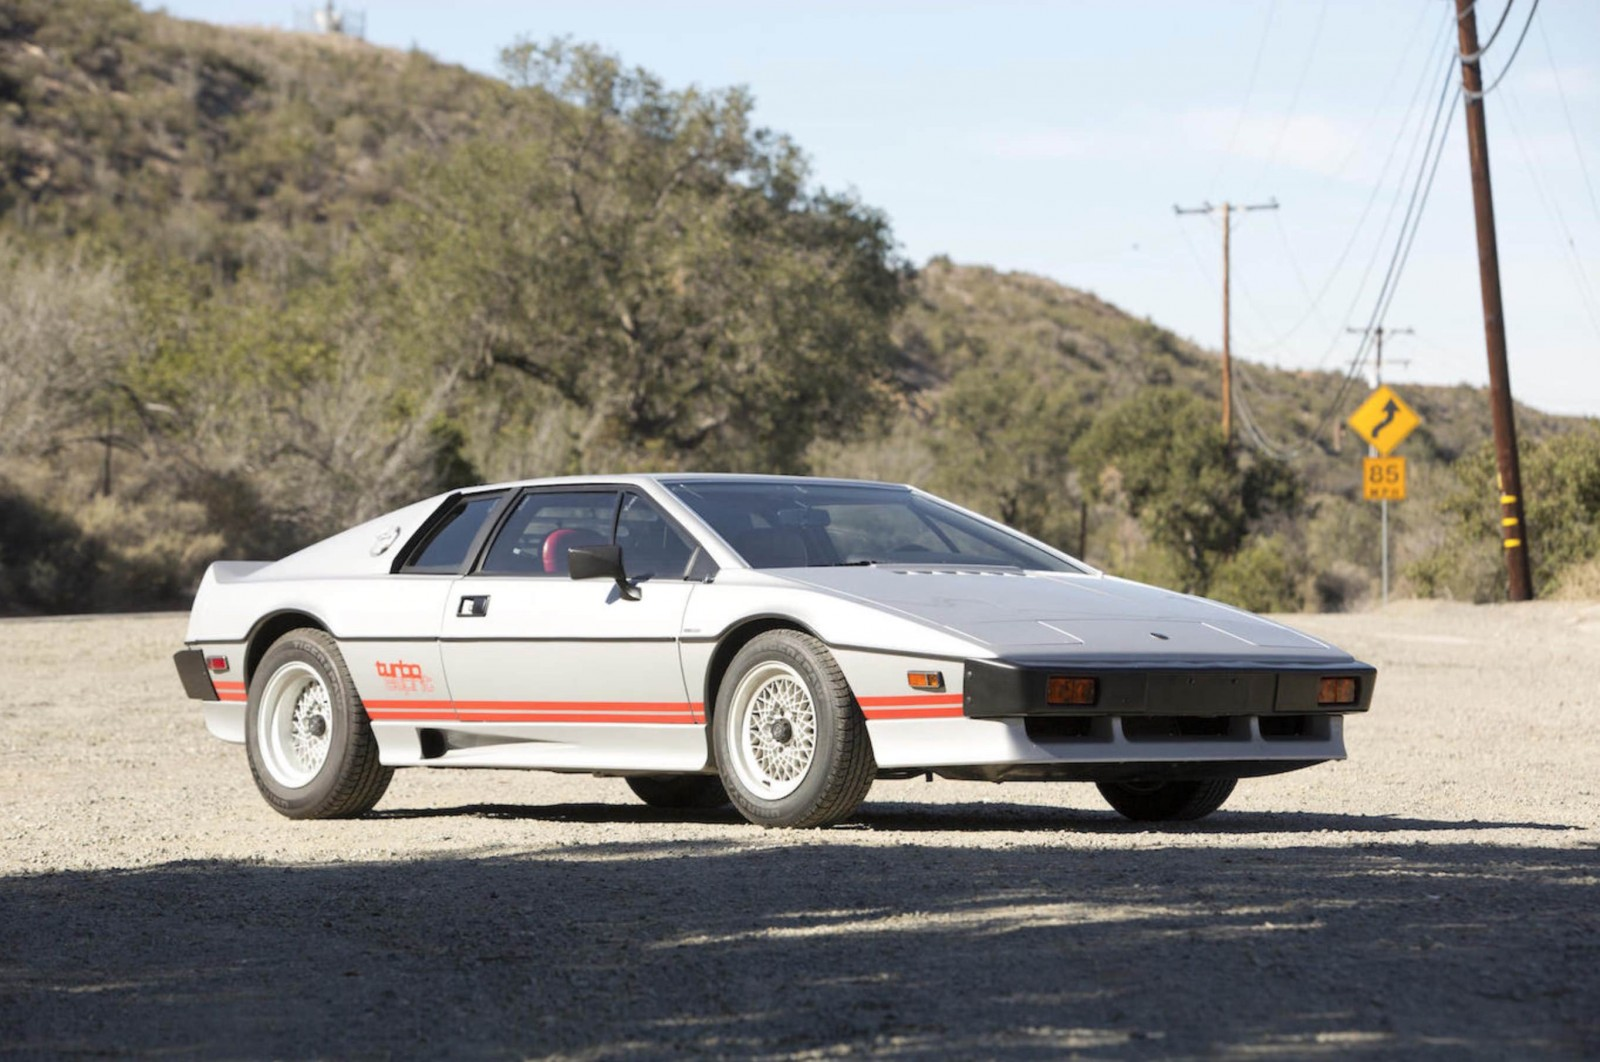 Lotus esprit photo - 4